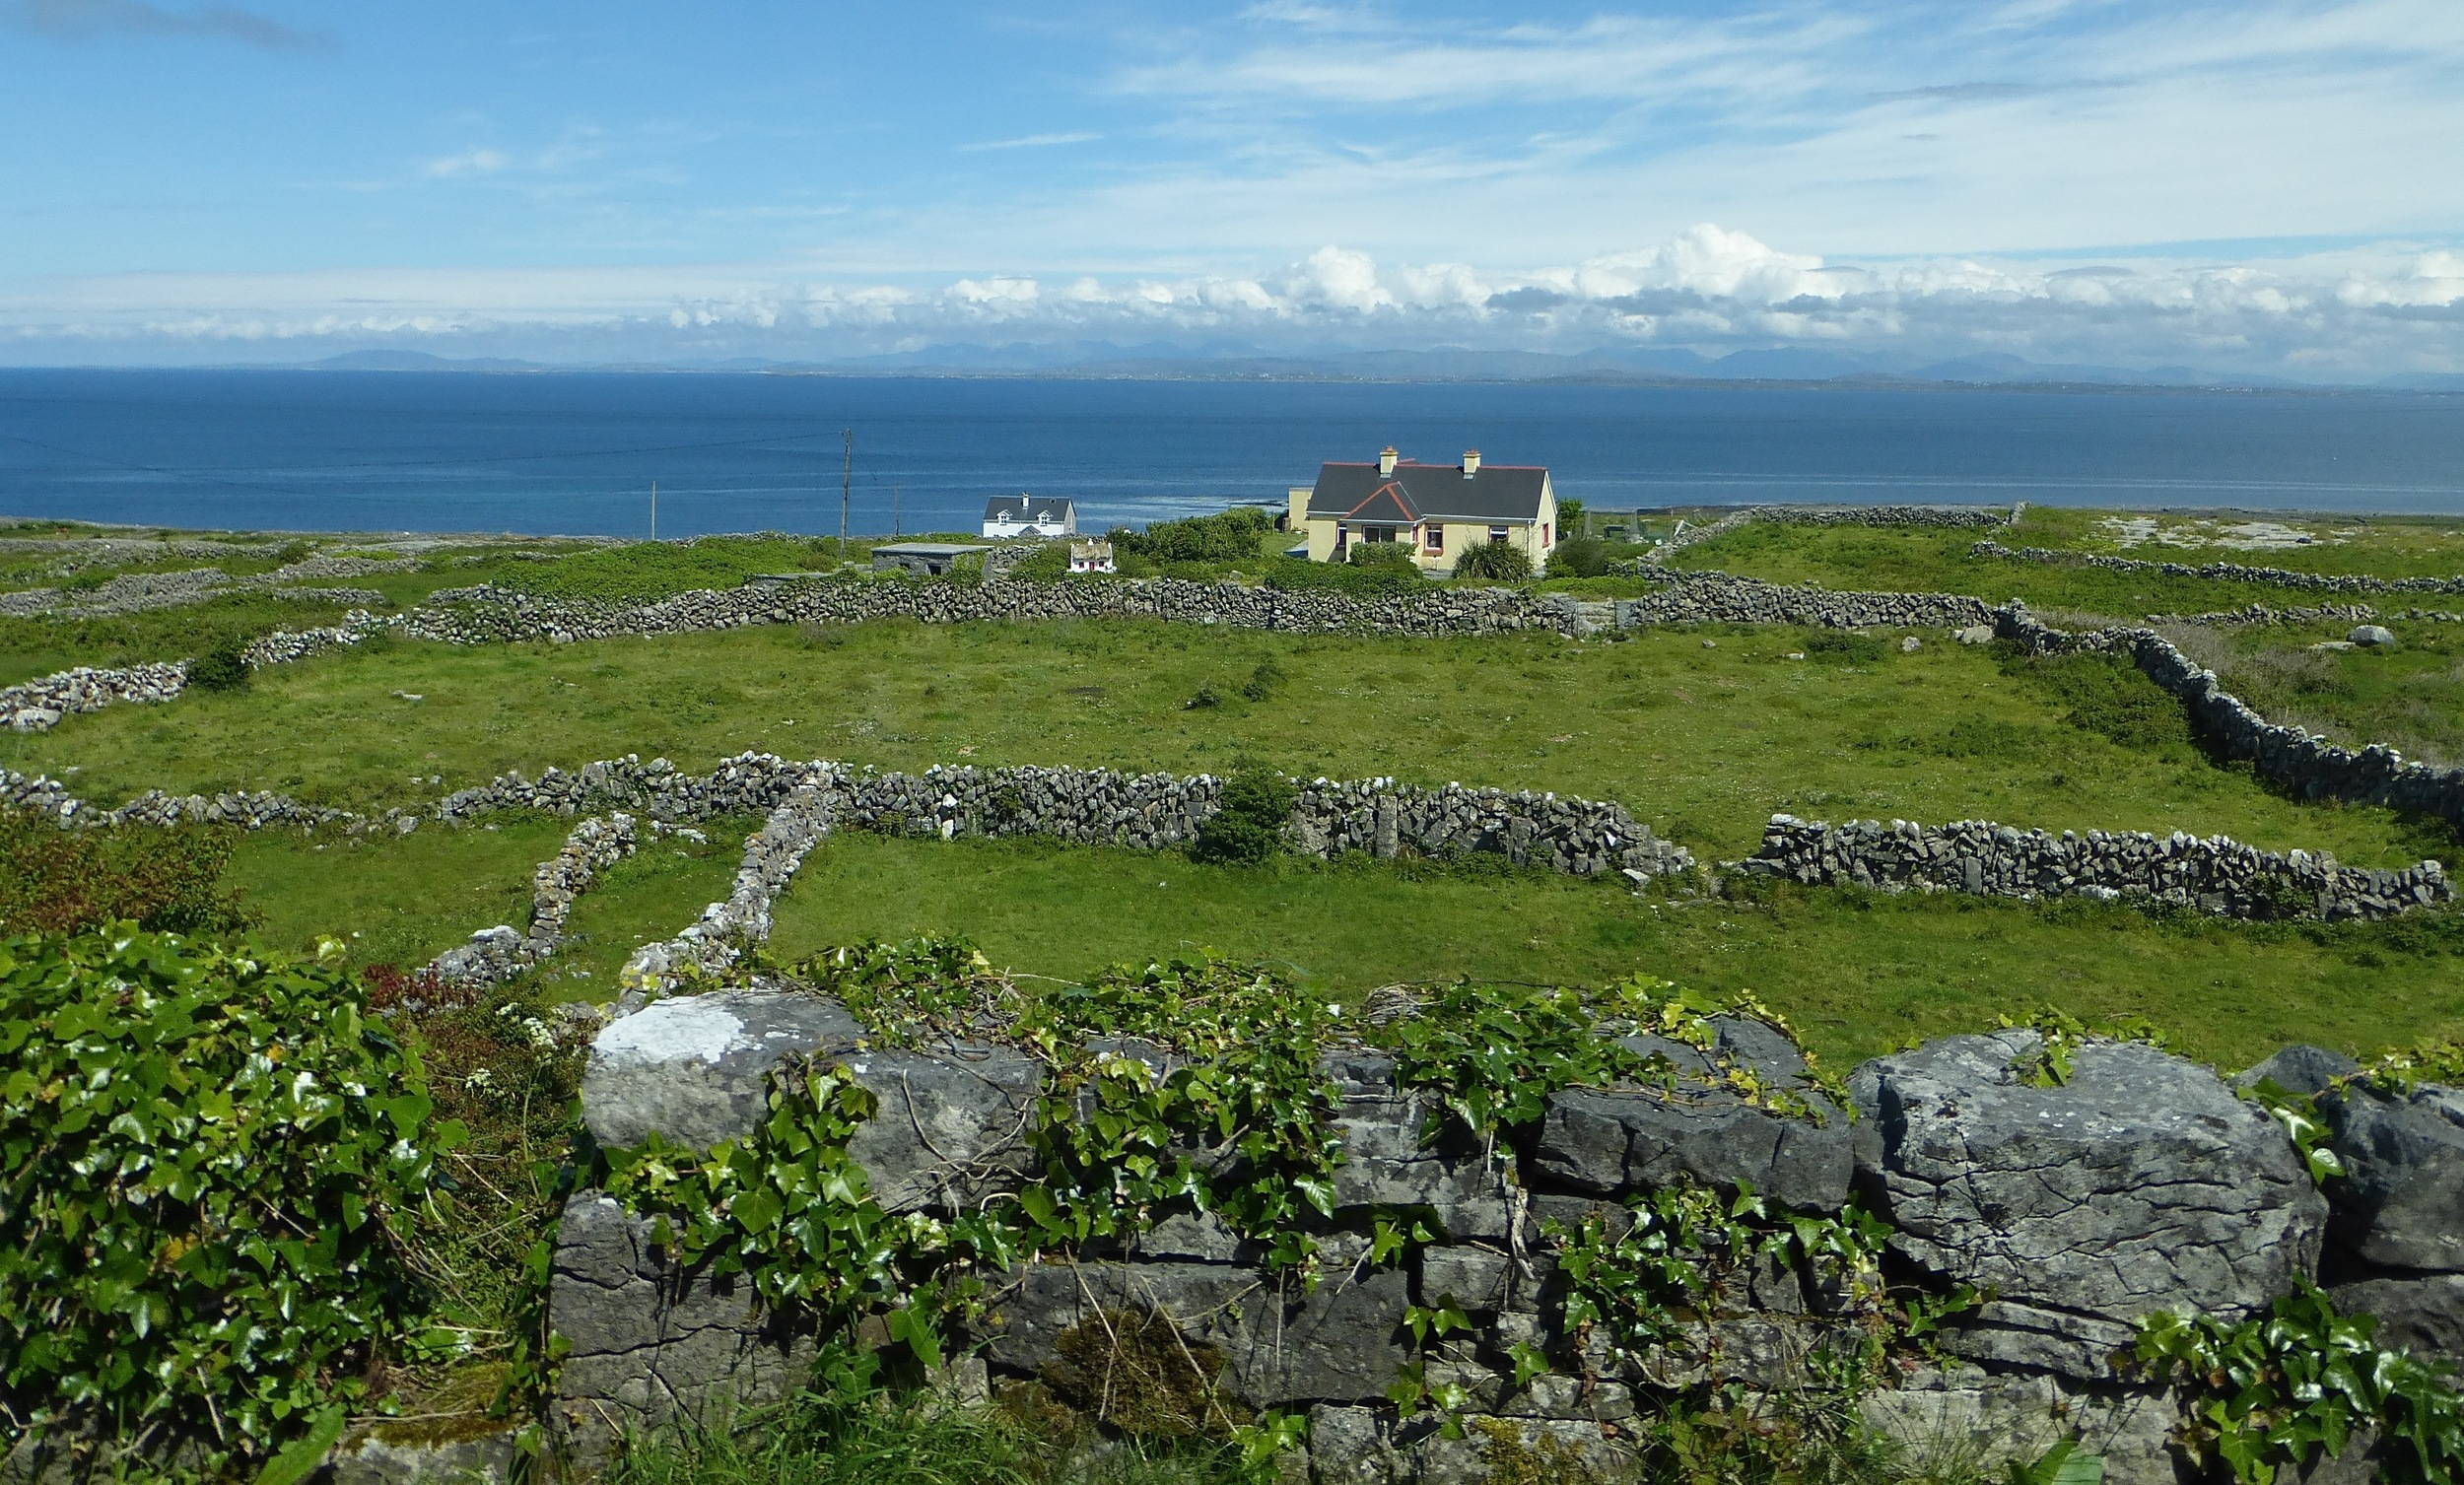 The  Aran Islands , in the Atlantic Ocean off of Galway, are mostly limestone with a thin frosting of soil. Fields are divided by fences constructed from the limestones removed from the ground. Far across the water you can see the Twelve Bens (peaks) on the Connemara peninsula.